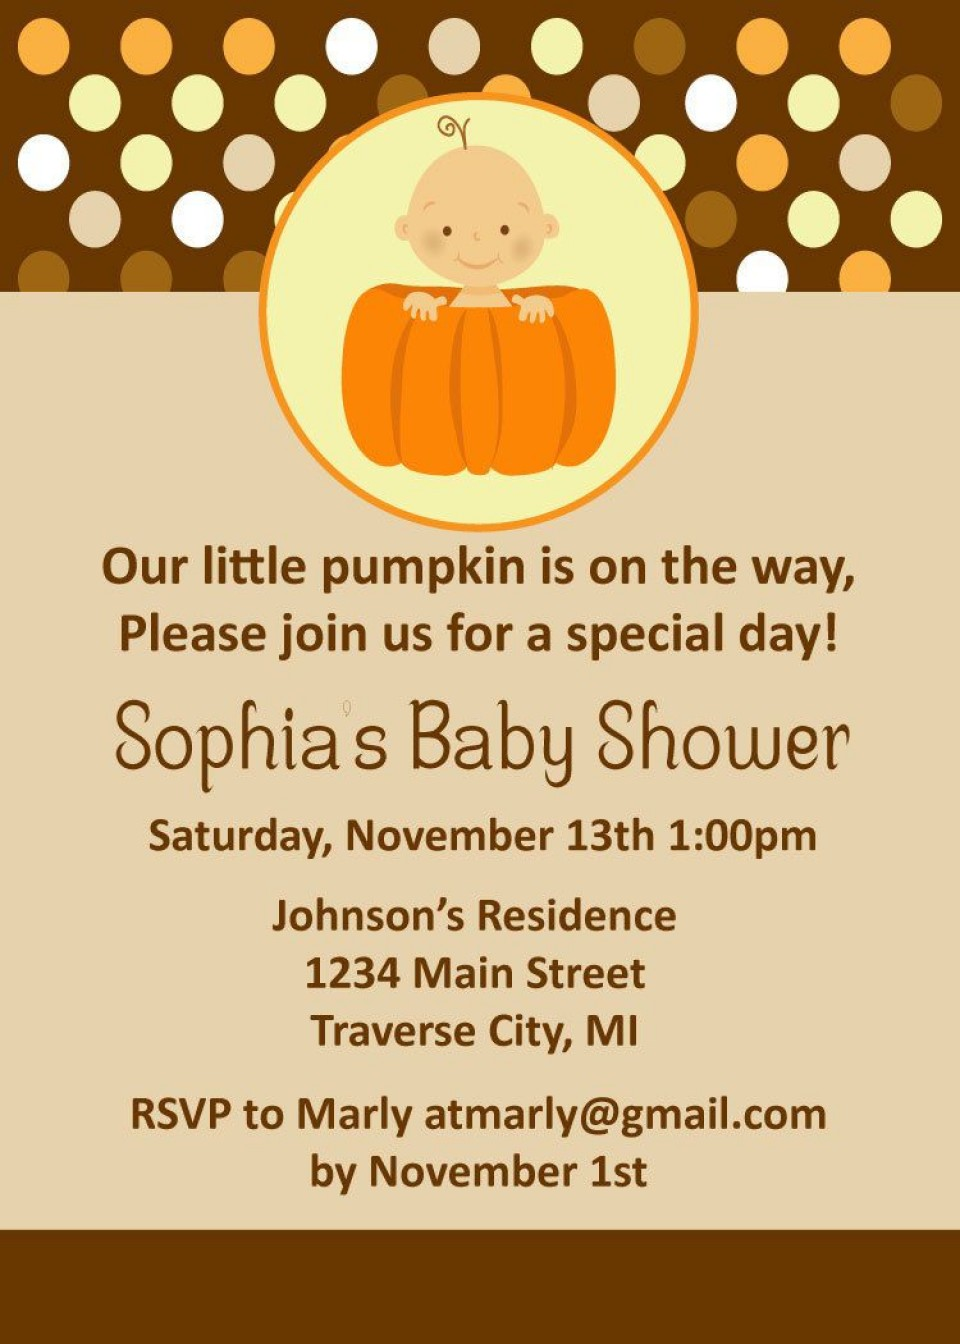 008 Striking Baby Shower Invitation Girl Pumpkin Image  Pink Little960